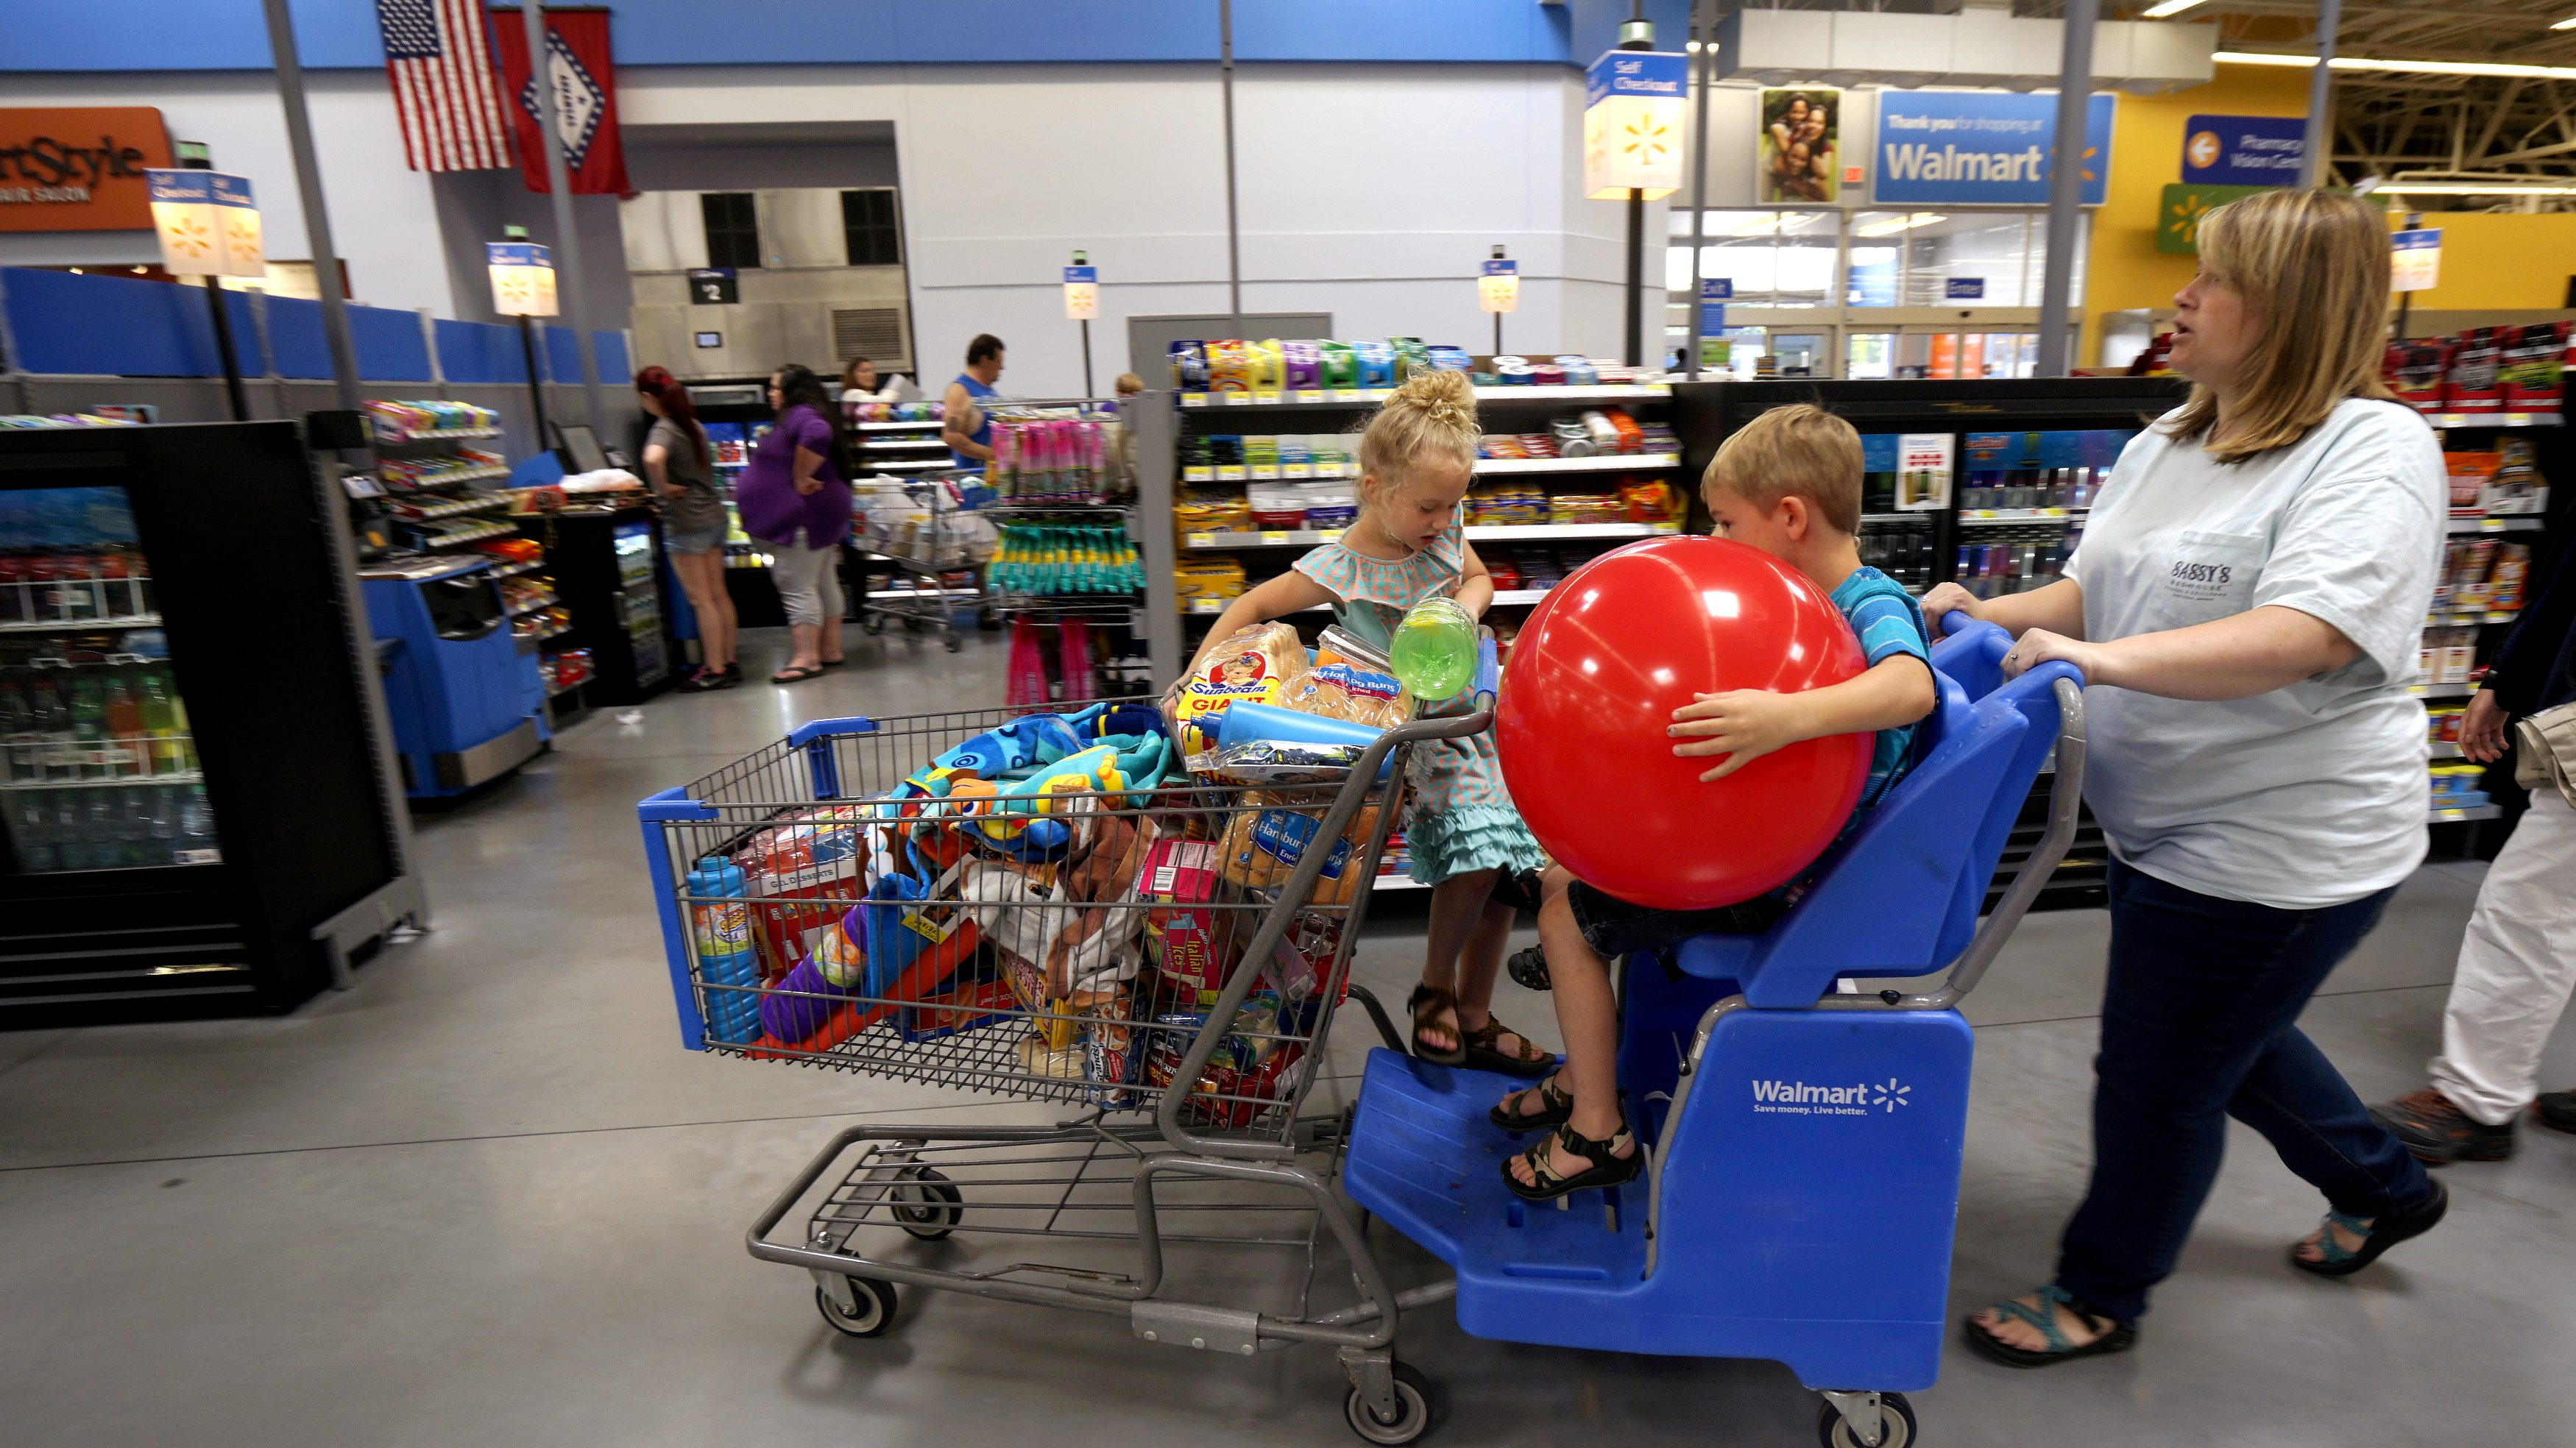 FILE PHOTO: A family shops at the Wal-Mart Supercenter in Springdale, Arkansas June 4, 2015.    REUTERS/Rick Wilking/File Photo                  GLOBAL BUSINESS WEEK AHEAD - SEARCH GLOBAL BUSINESS 10 APRIL FOR ALL IMAGES - RTX34VEF